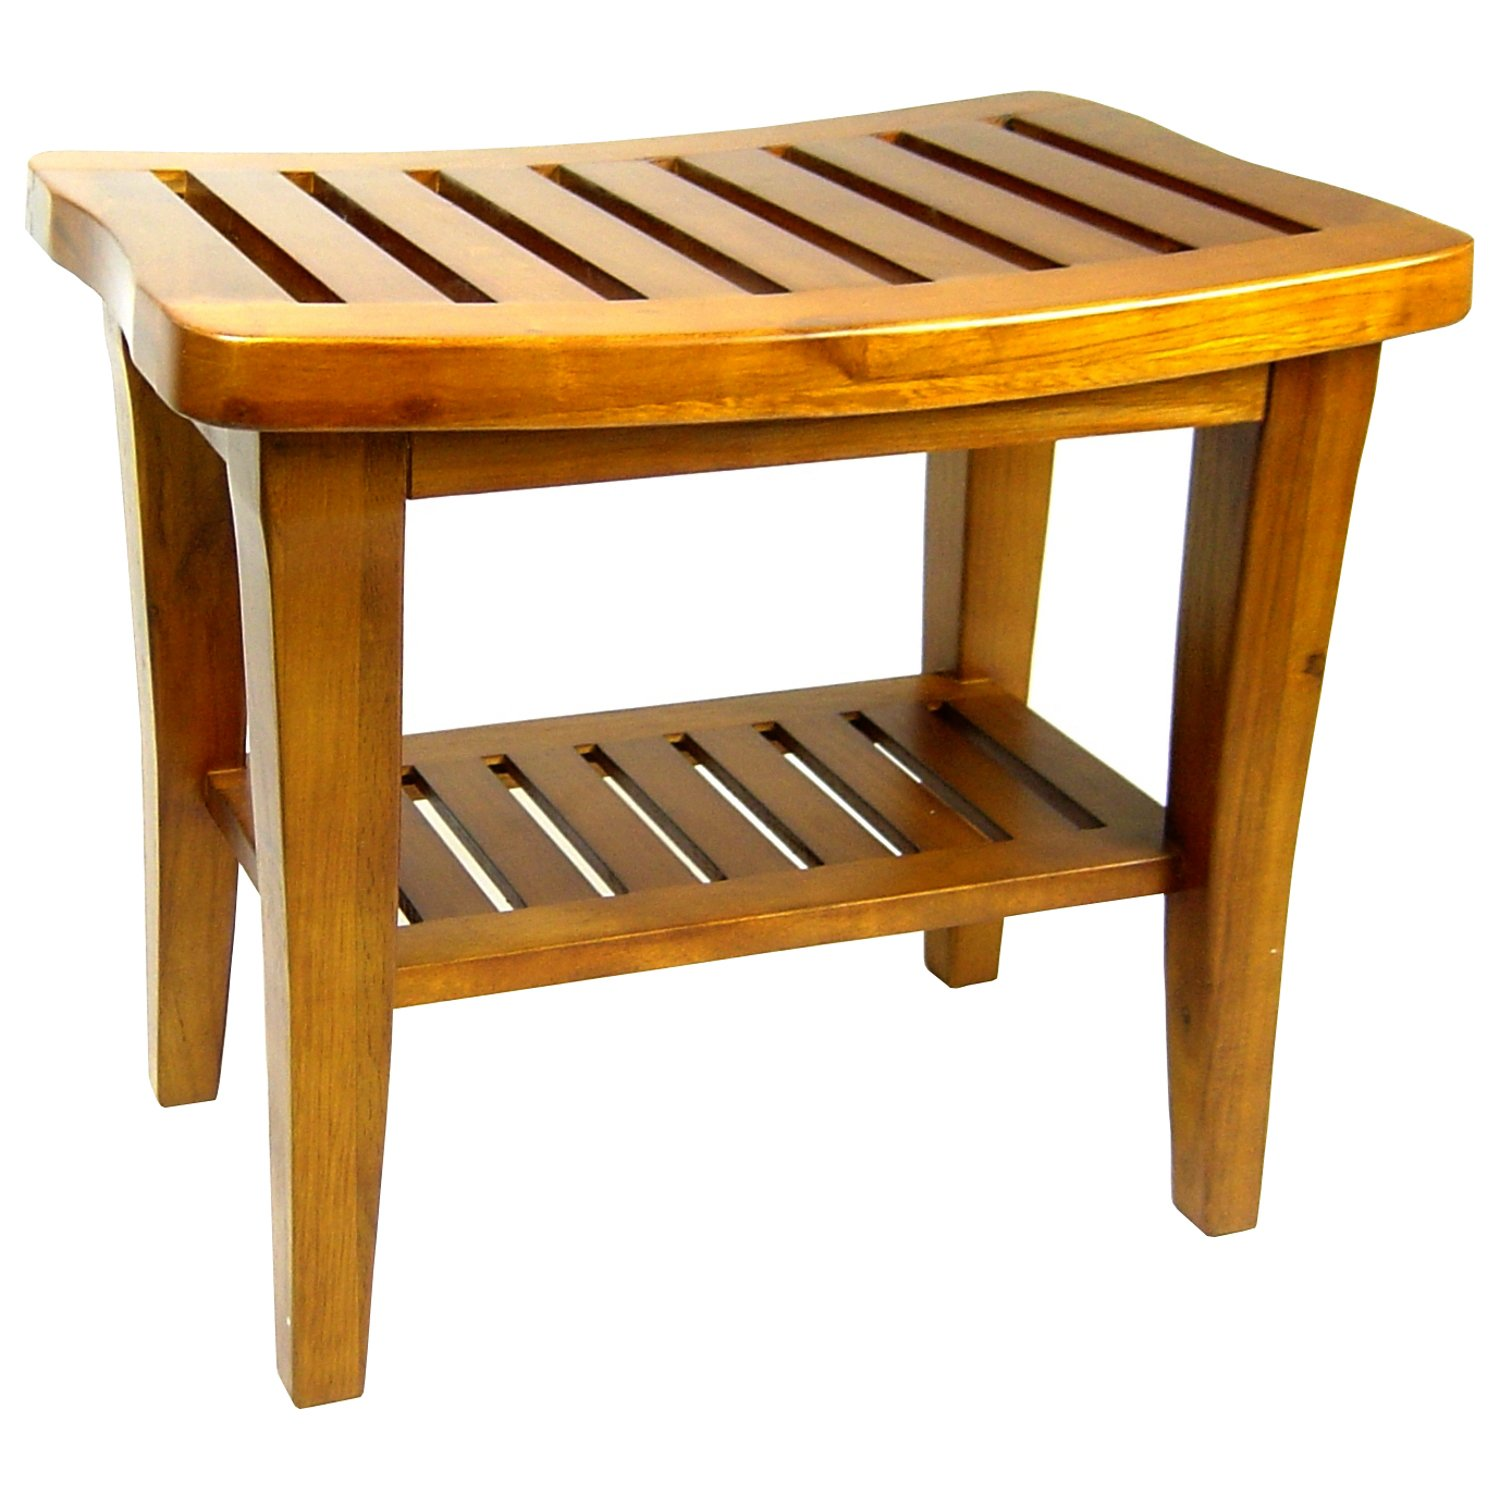 Best Rated in Outdoor Benches & Helpful Customer Reviews - Amazon.com